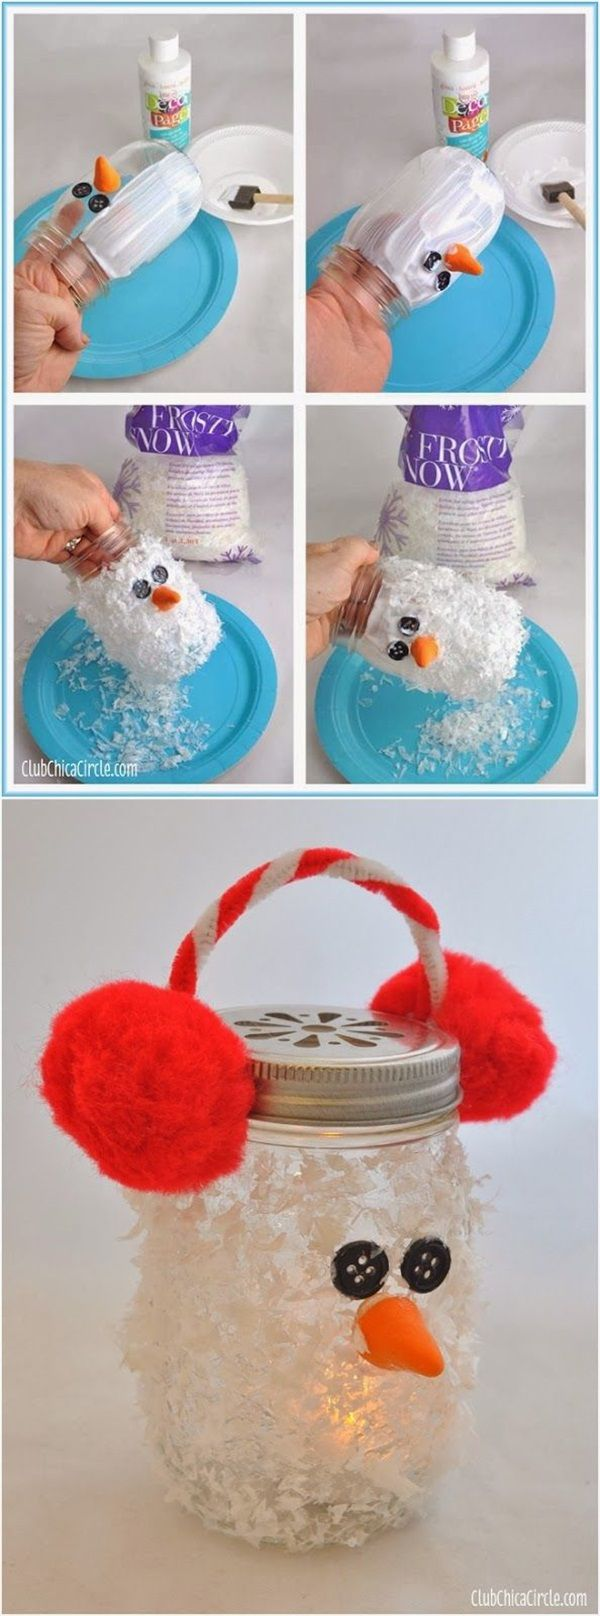 37 Super Easy DIY Christmas Crafts Ideas for Kids | Arts and Crafts ...